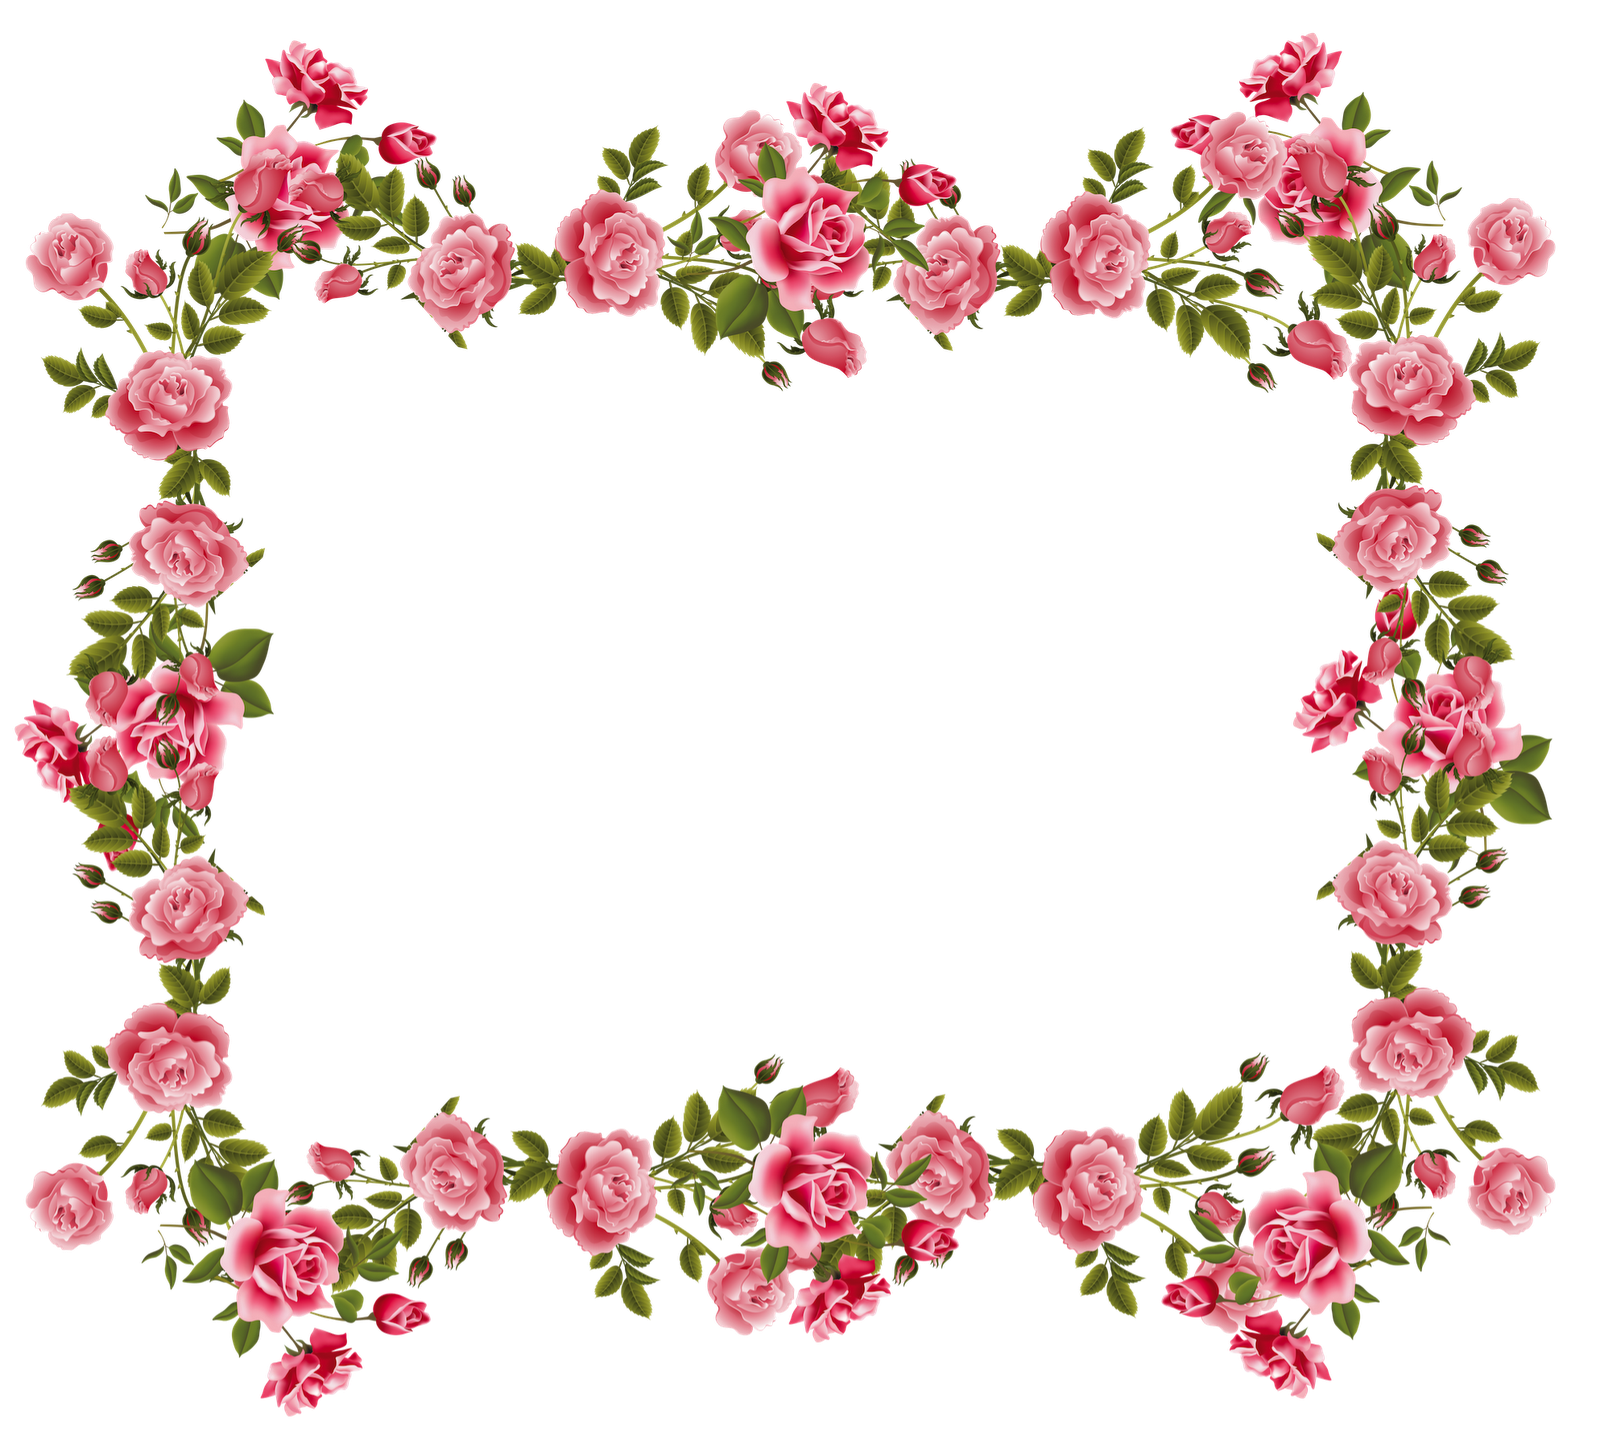 Fairy clipart borders. Rose and frames roses